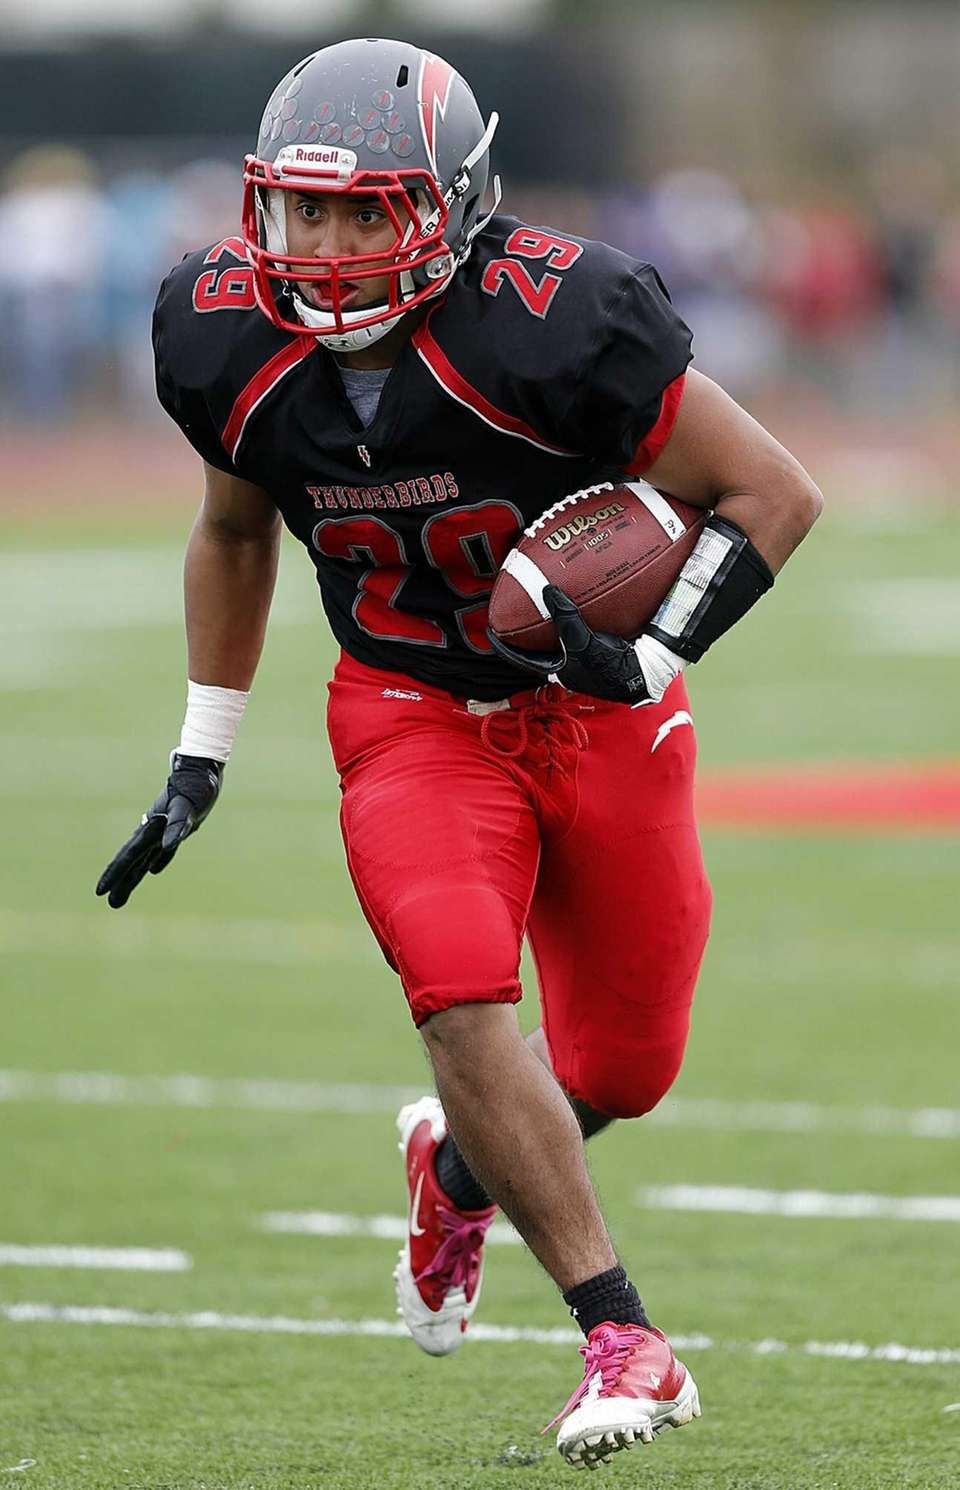 Connetquot's Bryan Ramirez rushes during the first half